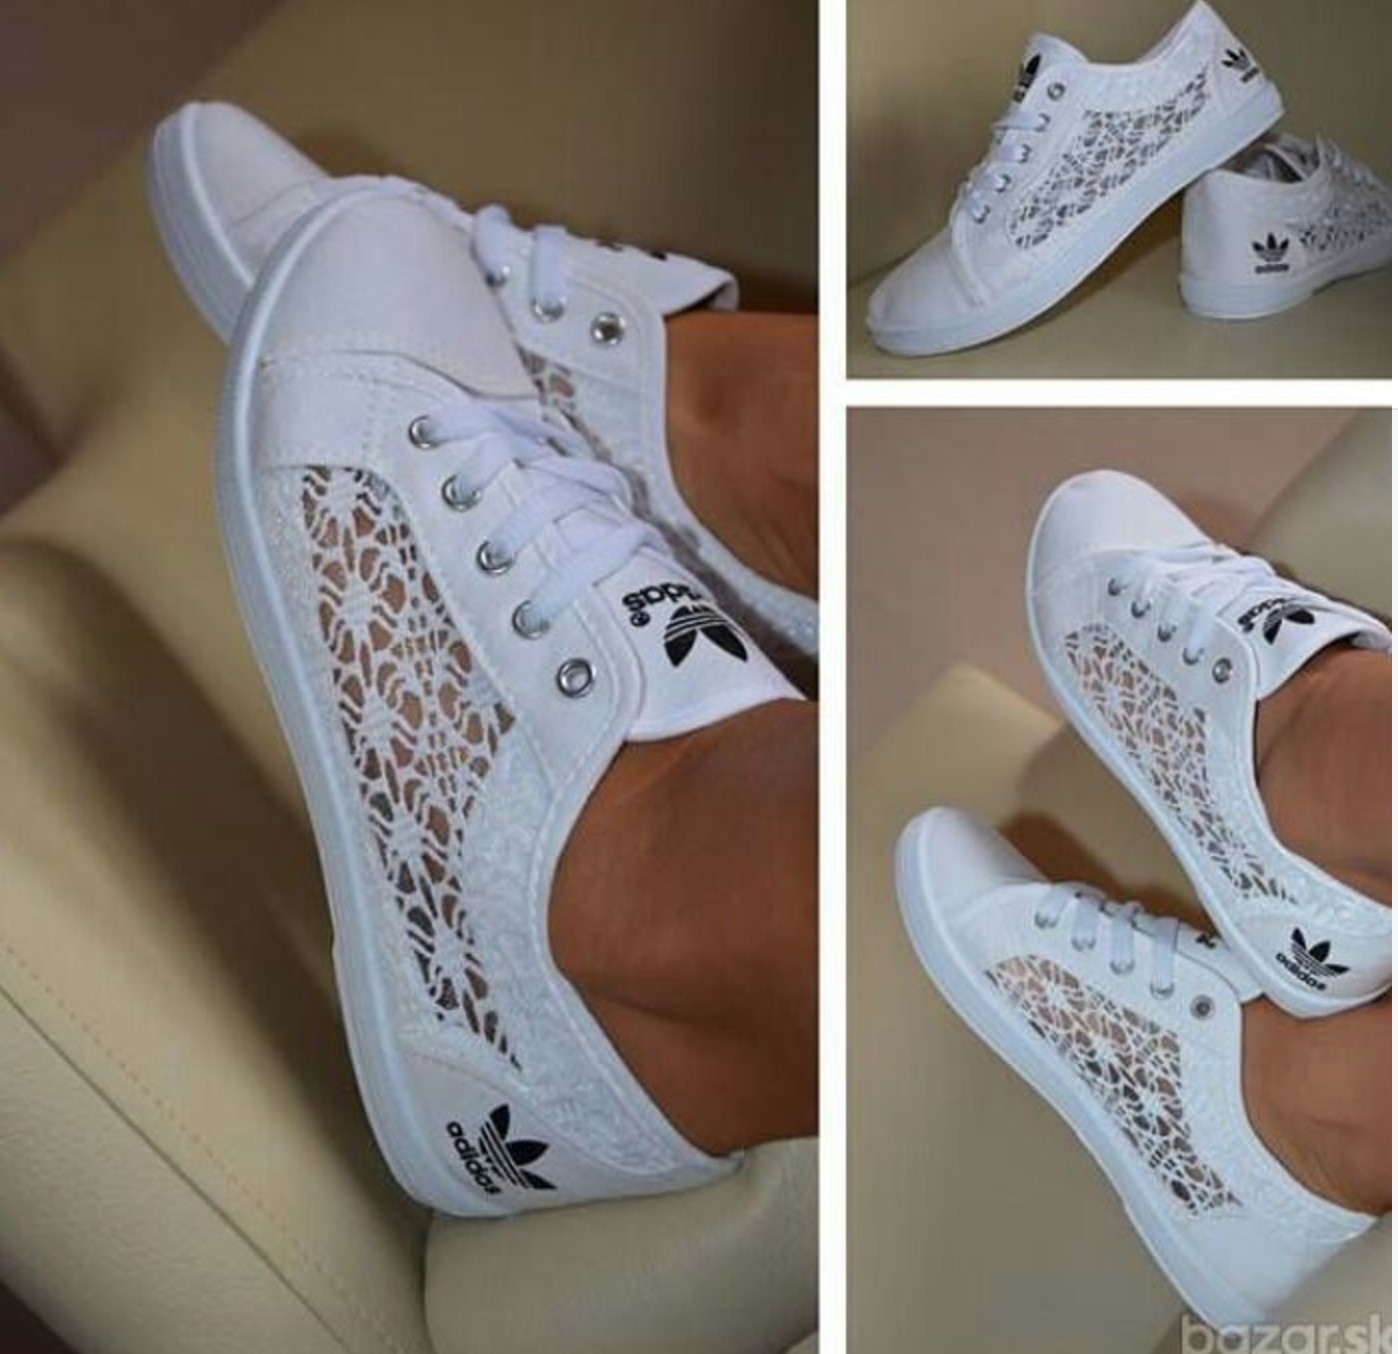 Novelista dañar Papá  Pin by Anahi Arriaga on Dressing | Lace adidas, Lace adidas shoes, White  lace shoes